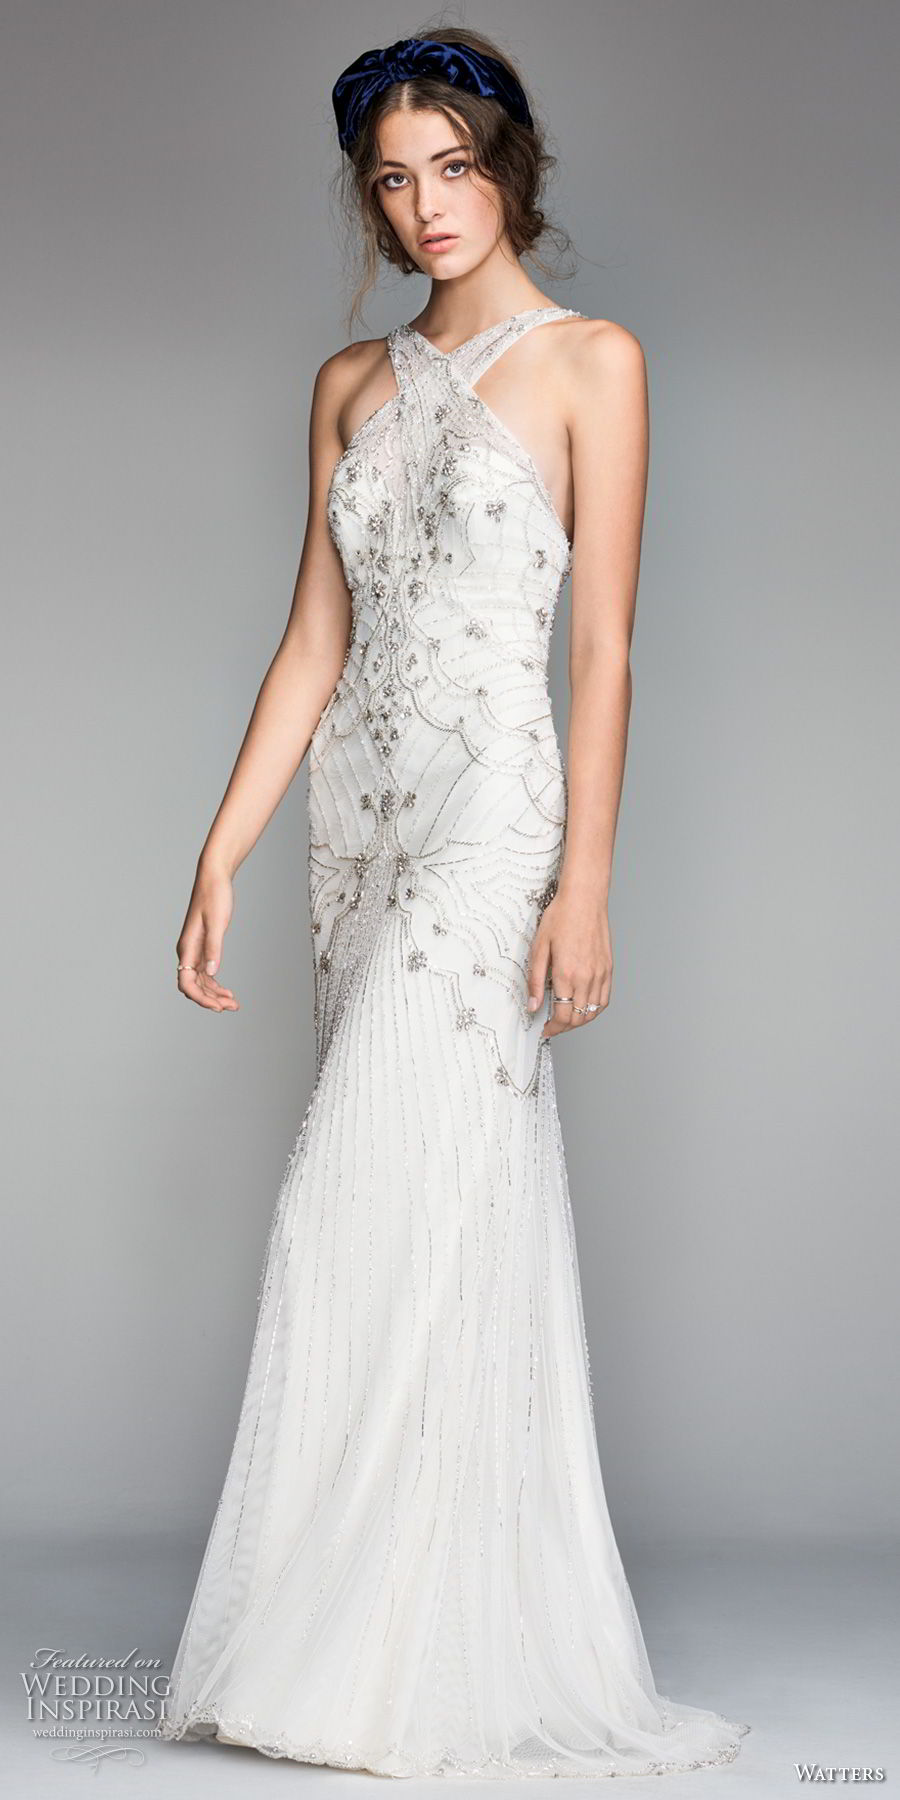 willow by watters spring 2018 sleeveless criss cross halter neckline heavily embellished bodice art deco elegant fit and flare wedding dress open back short train (9) mv